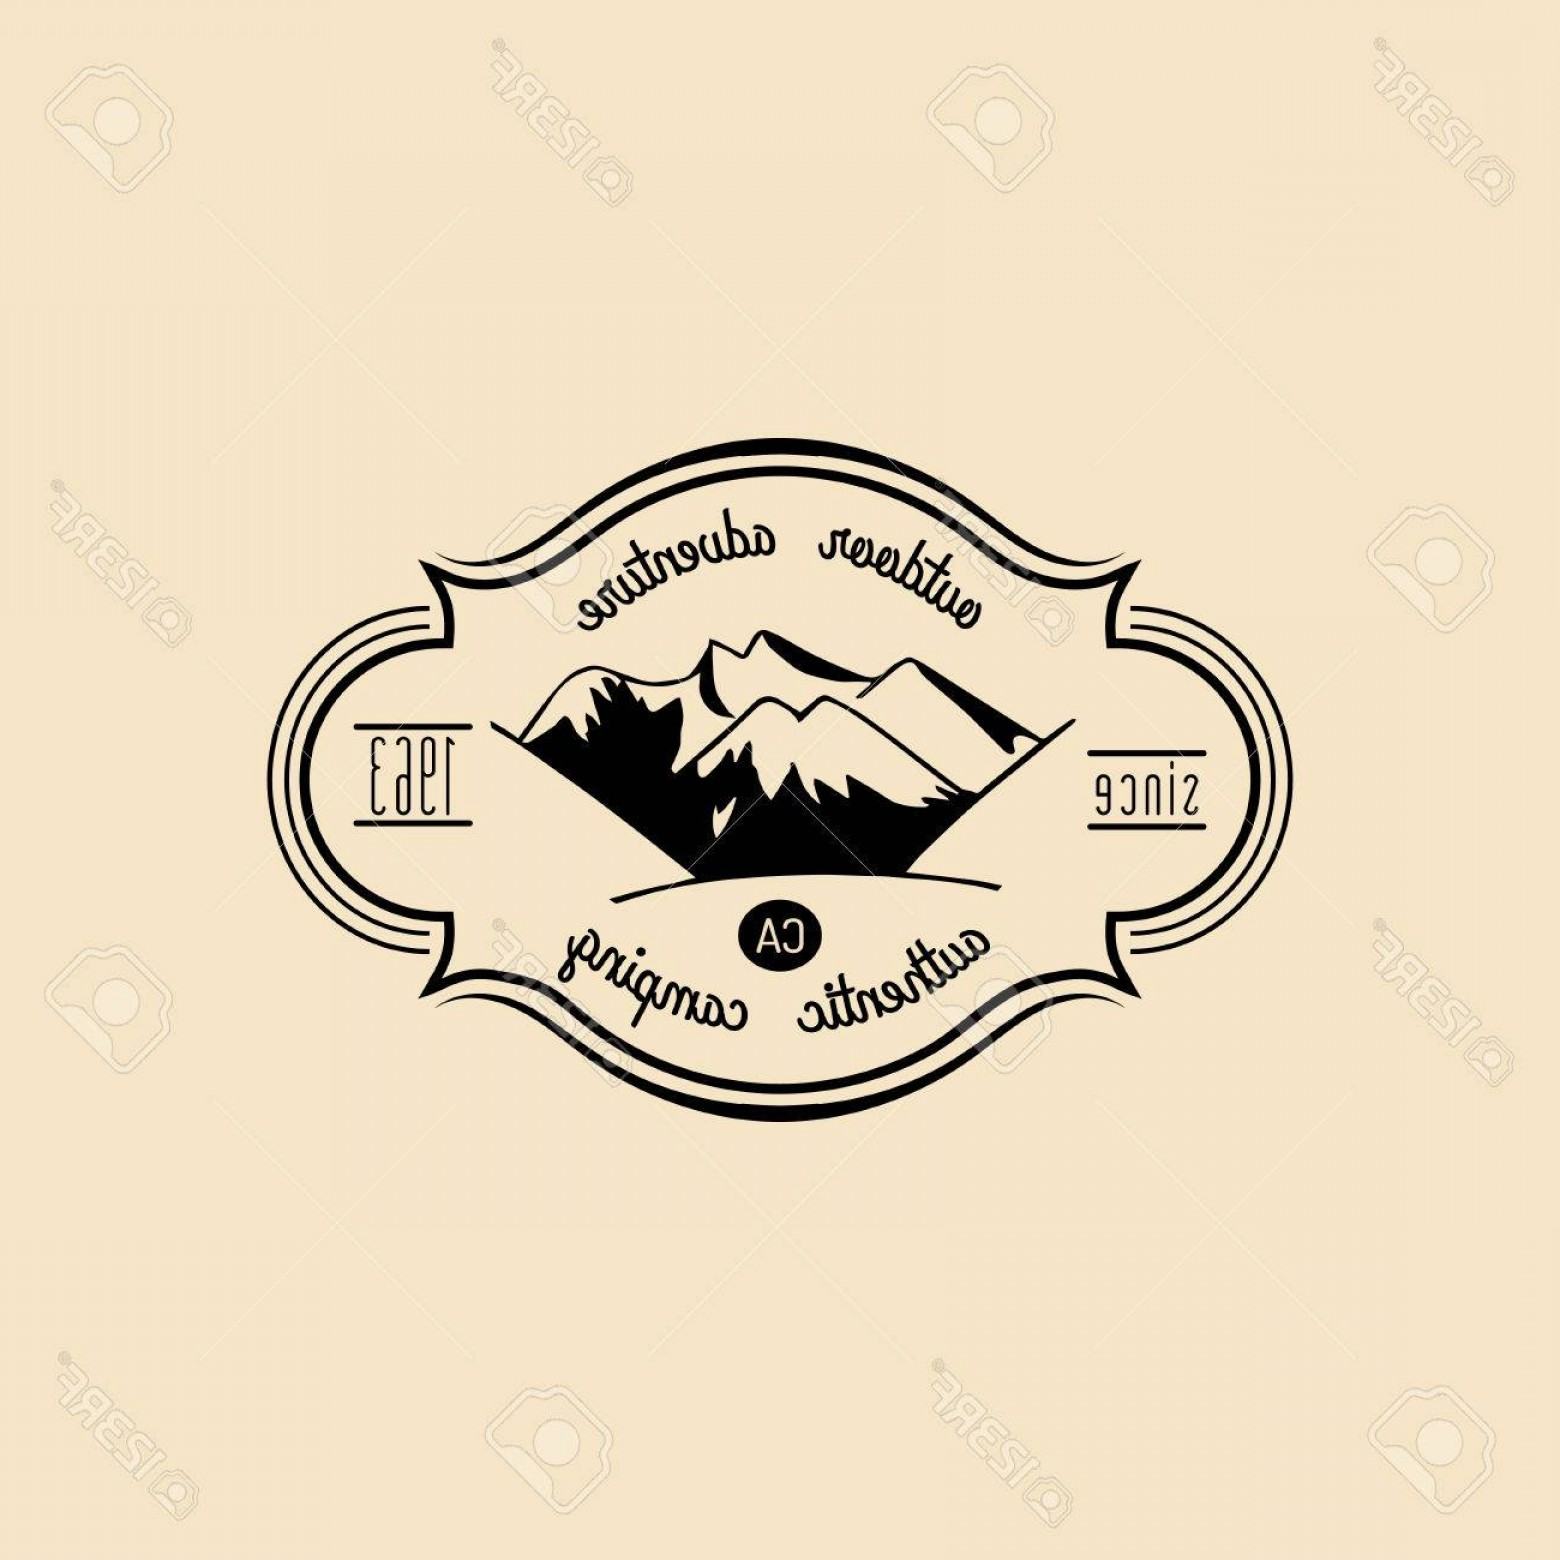 Hipster Logo Vectors Mountain: Photostock Vector Vector Camp Logo Tourist Sign With Hand Drawn Mountain Landscape Retro Hipster Badge Label Of Outdoo